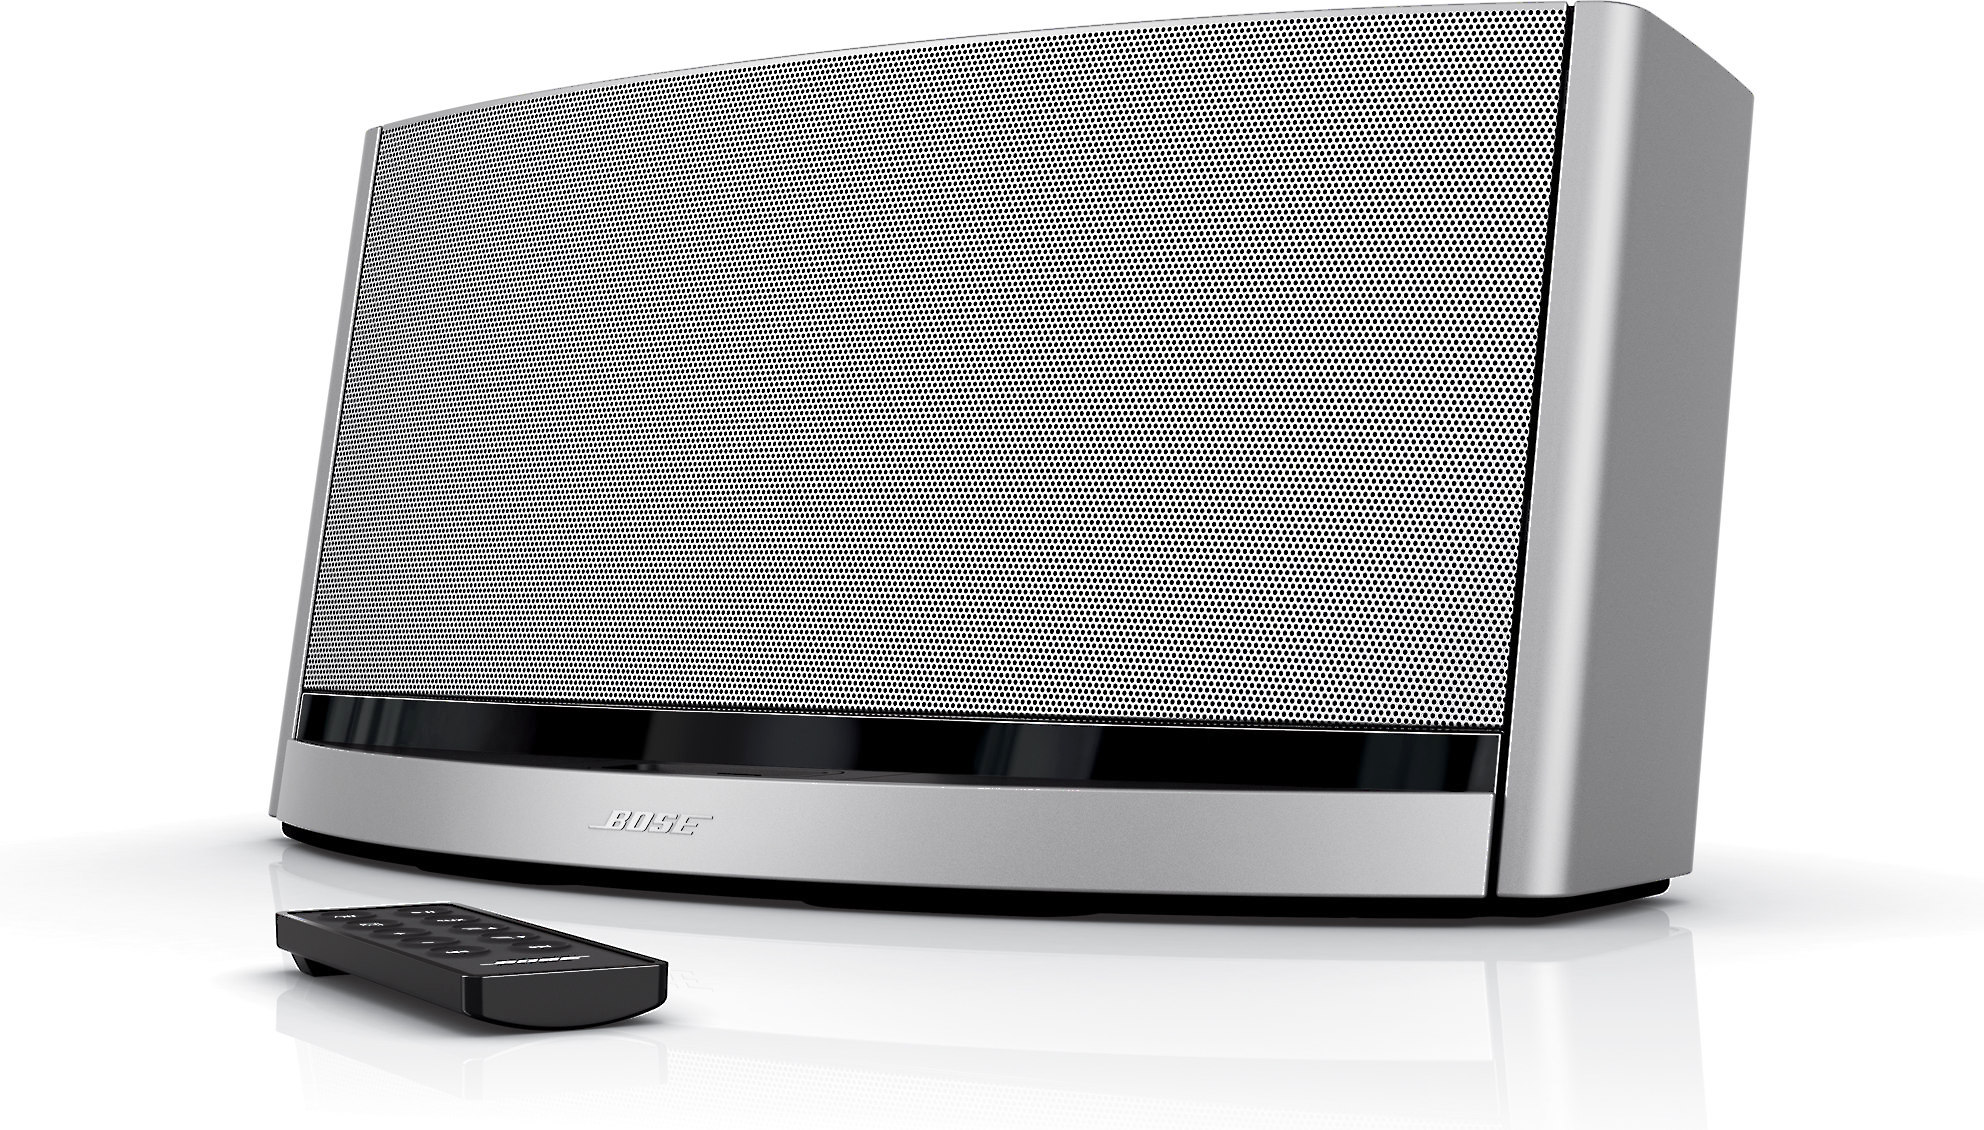 731a1fec574cce Bose® SoundDock® 10 Bluetooth® digital music system with iPhone®/iPod® dock  at Crutchfield